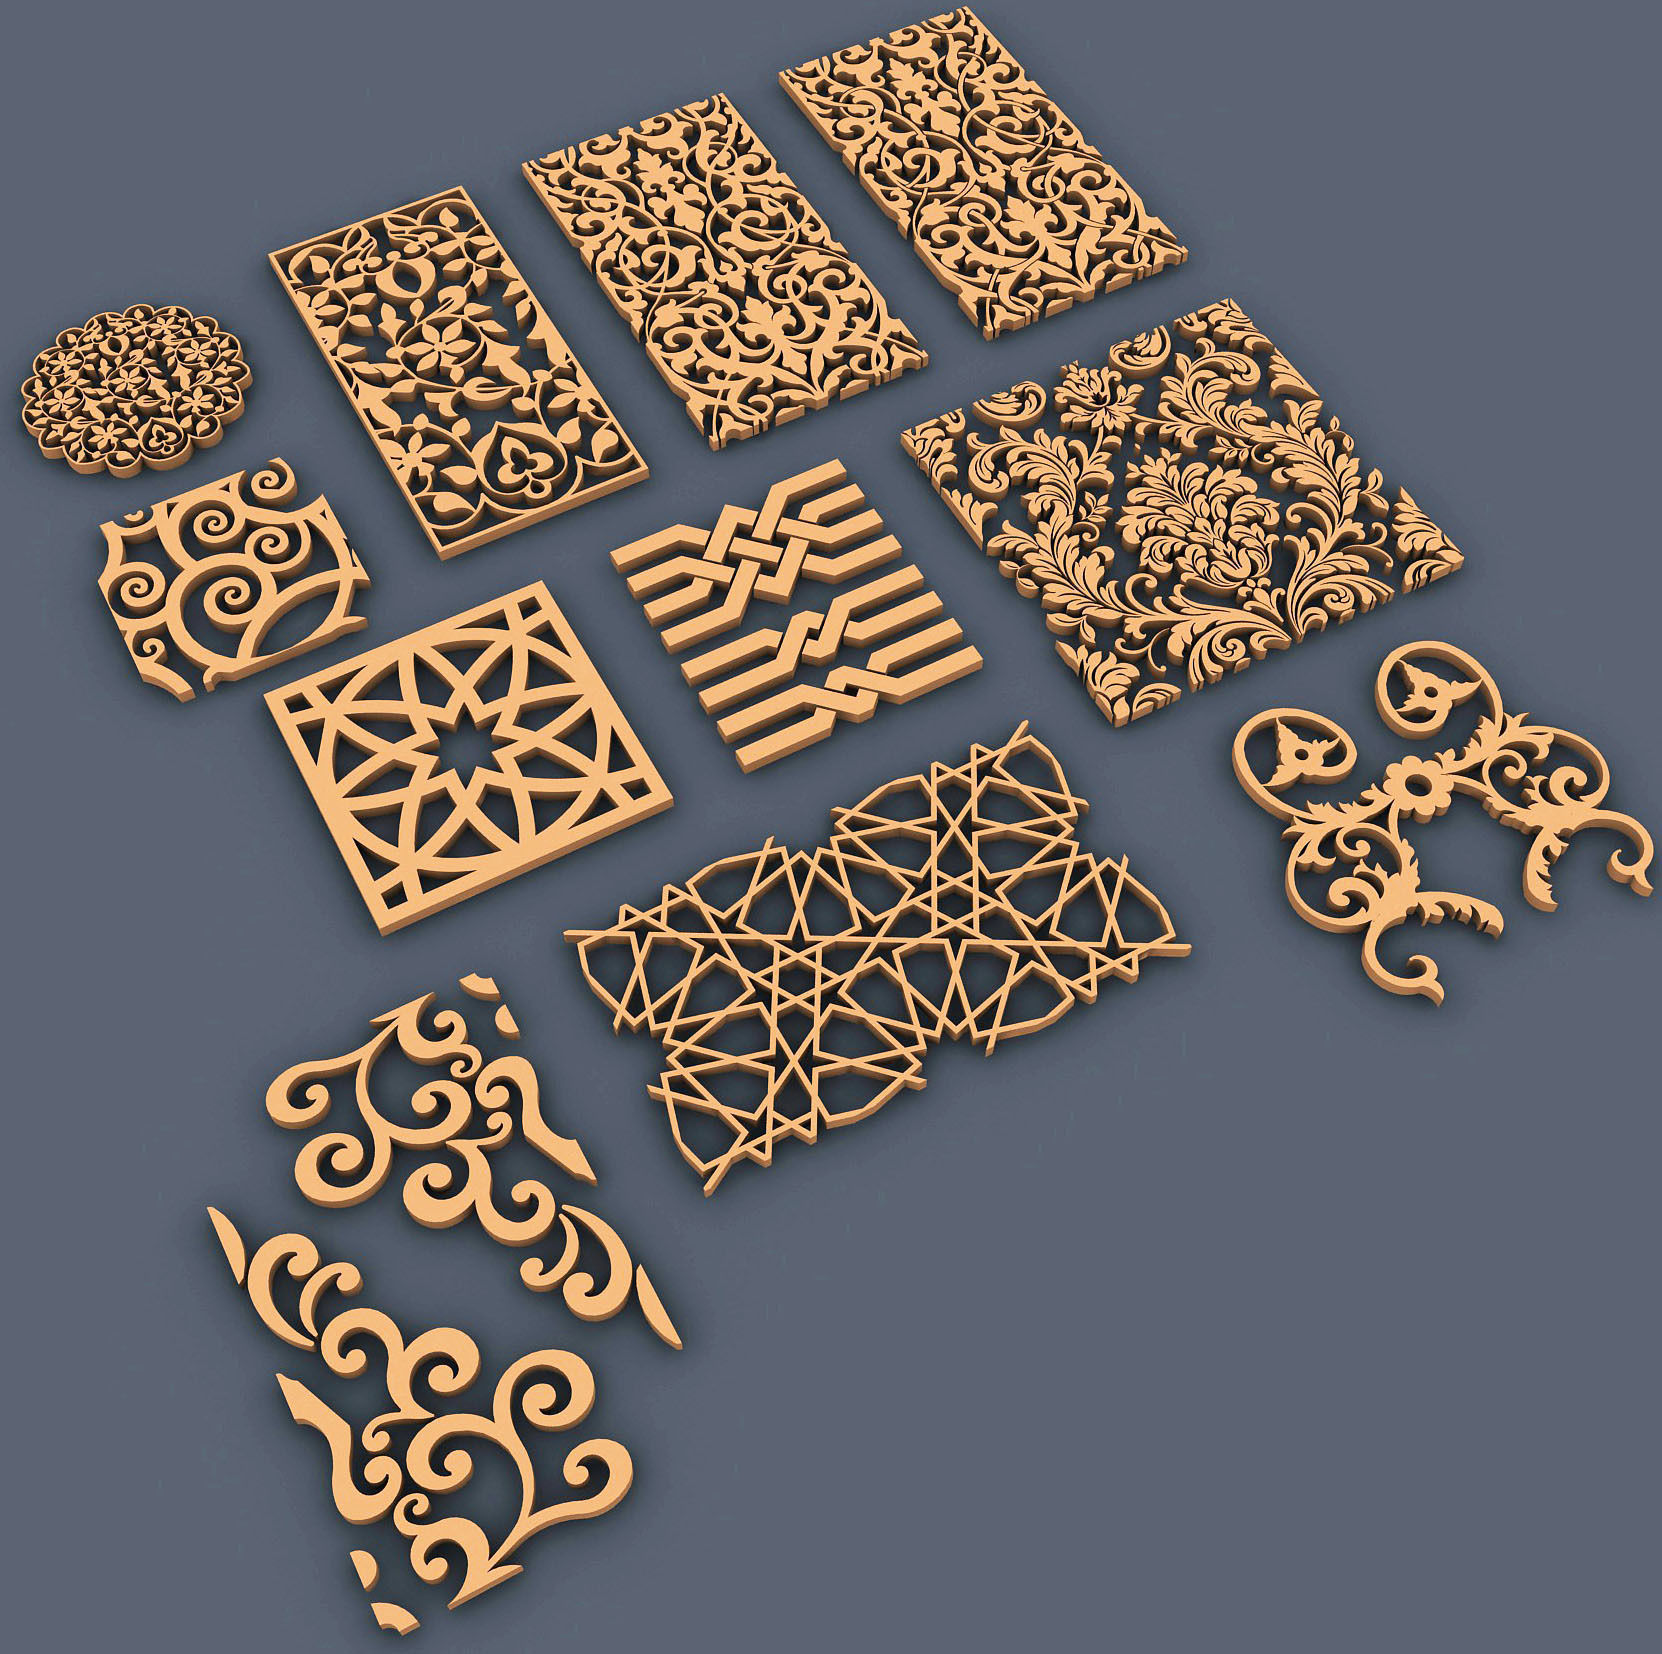 Ornaments 3d model max dwg for Decor 3d model